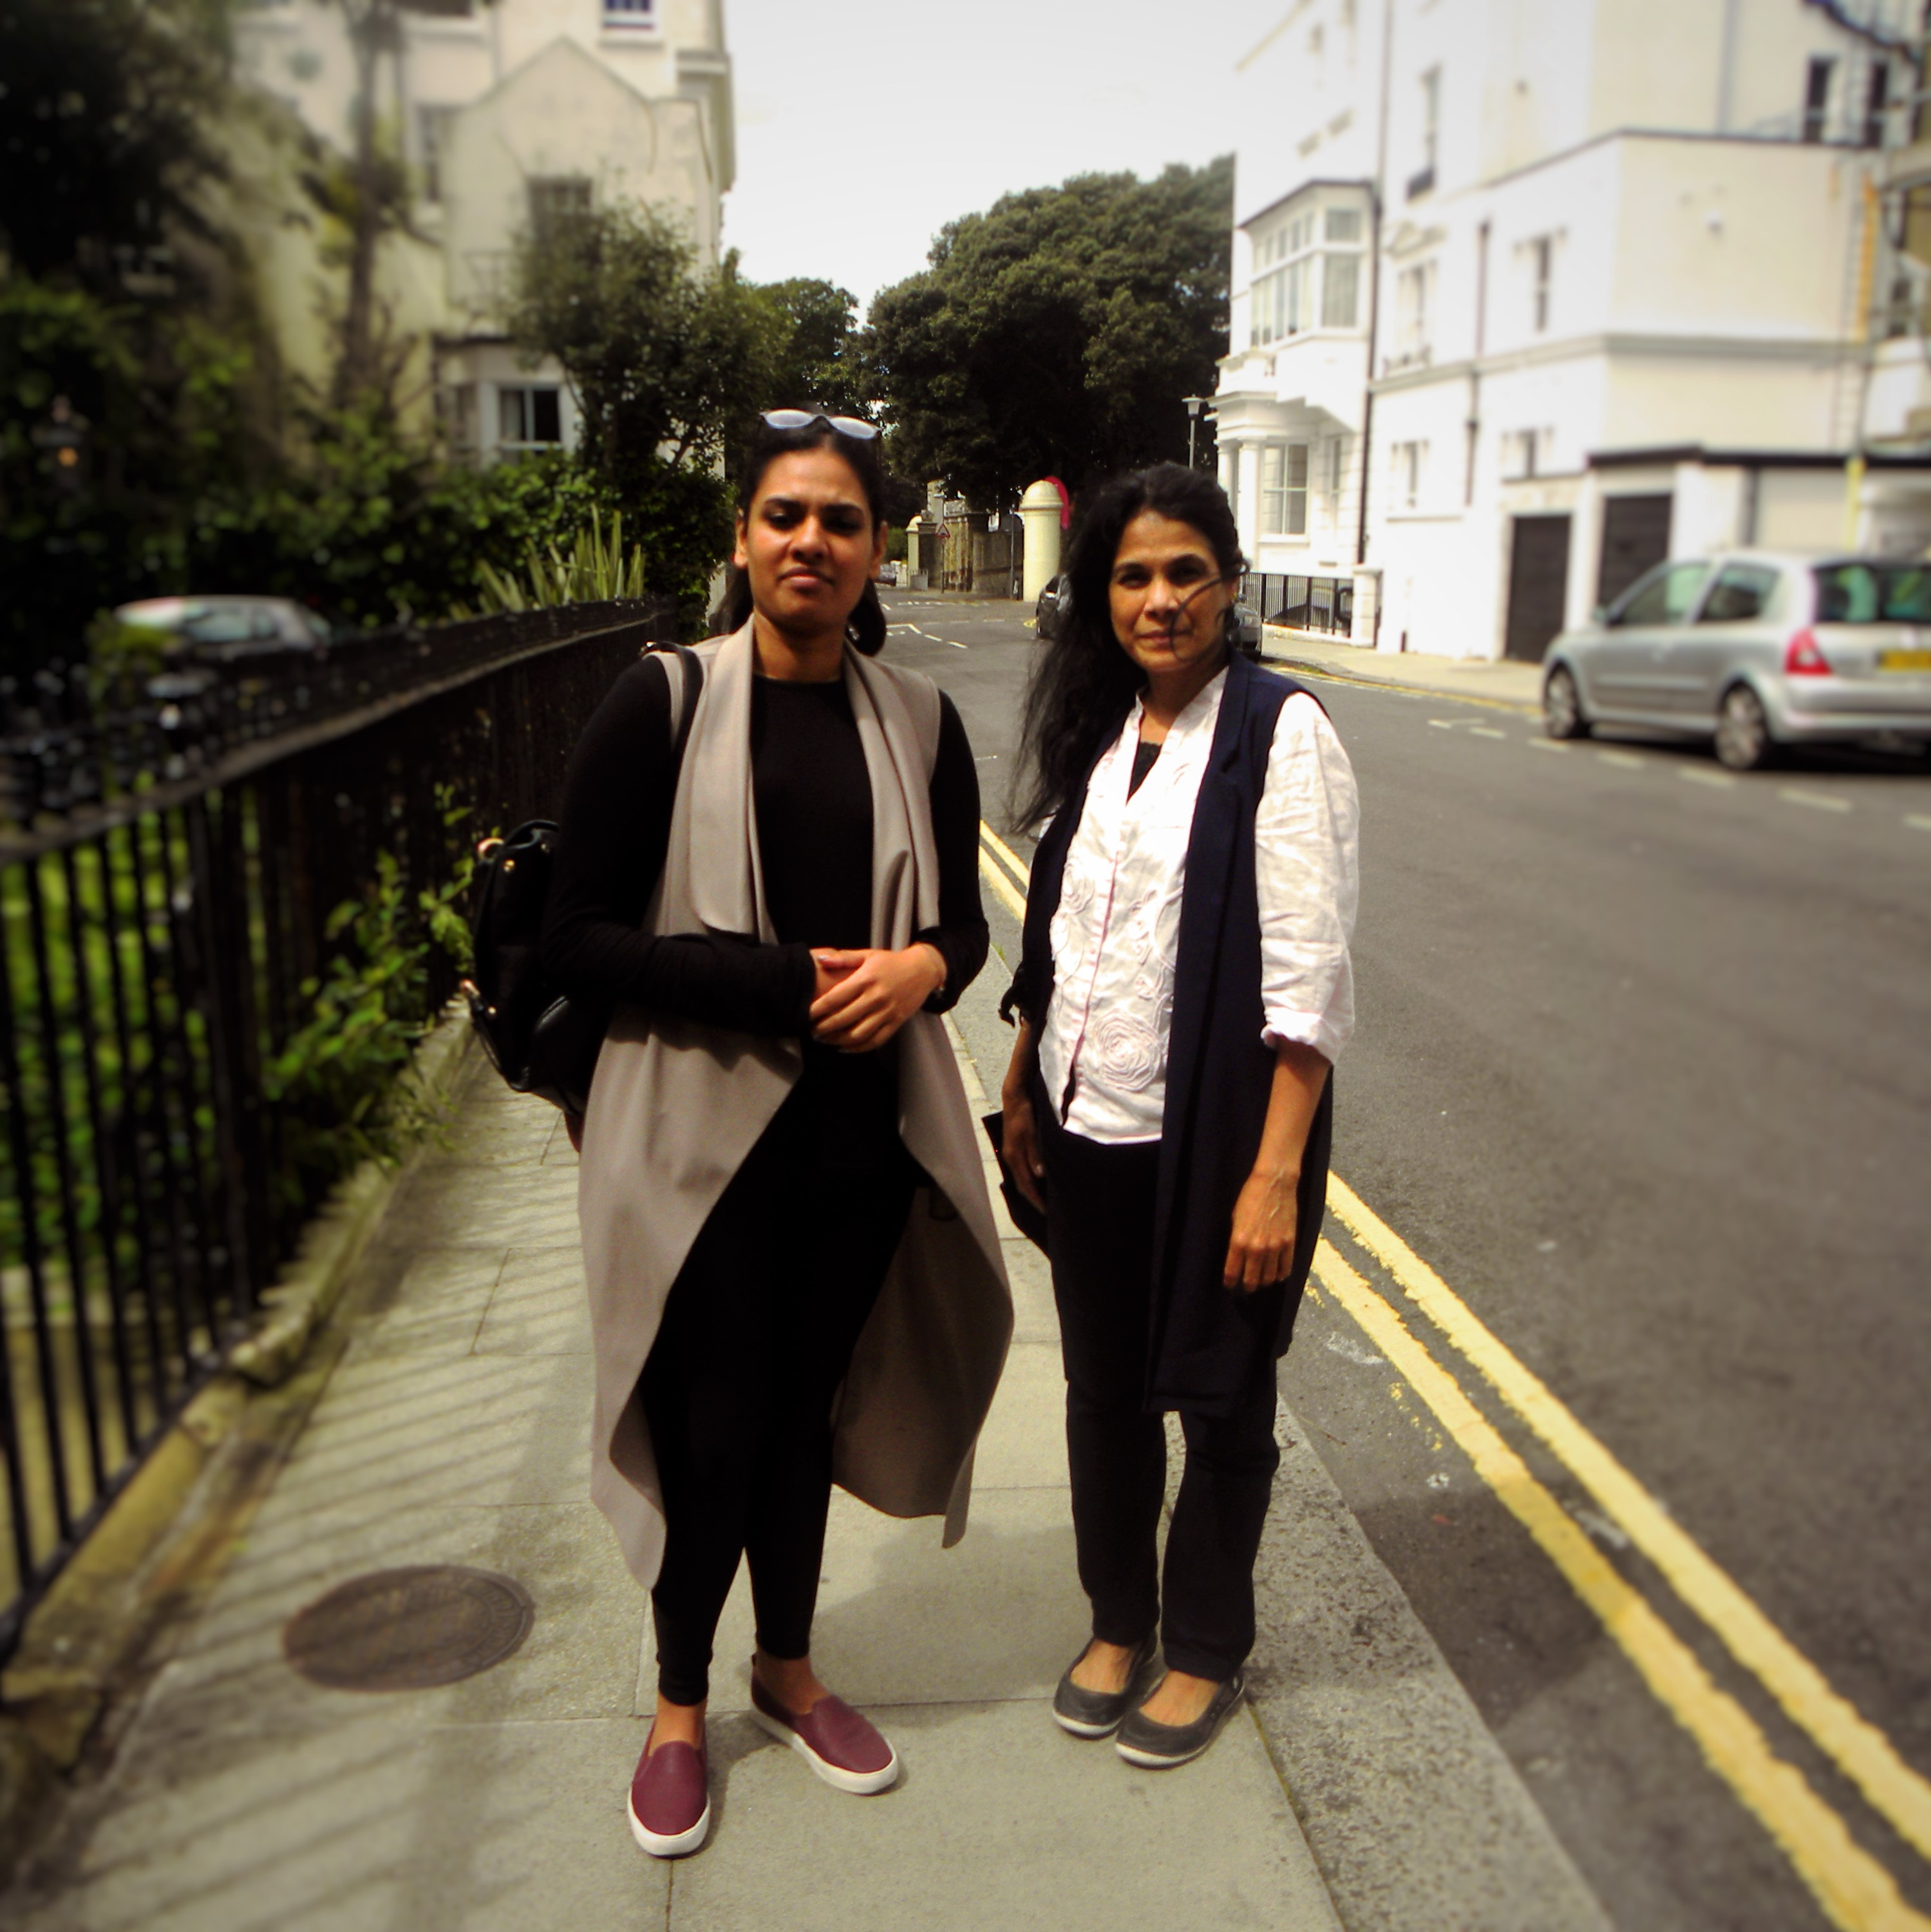 On the left Maneesha is wearing a top, dunner and leggins from Bookoo, and shoes from HeM. Nayana is wearing a dunner from Bookoo, jeans H&M and shoes from M&S.